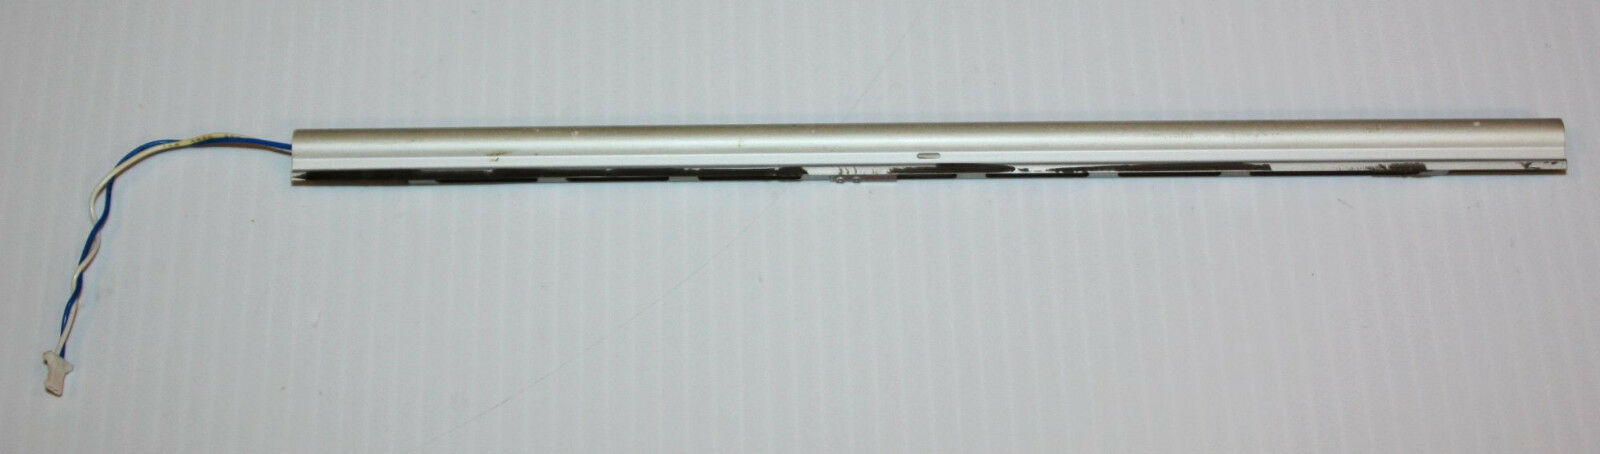 Titanium Clutch/Hinge Cover Aiport Cable 821-0224-A-Apple Powerbook G4 15